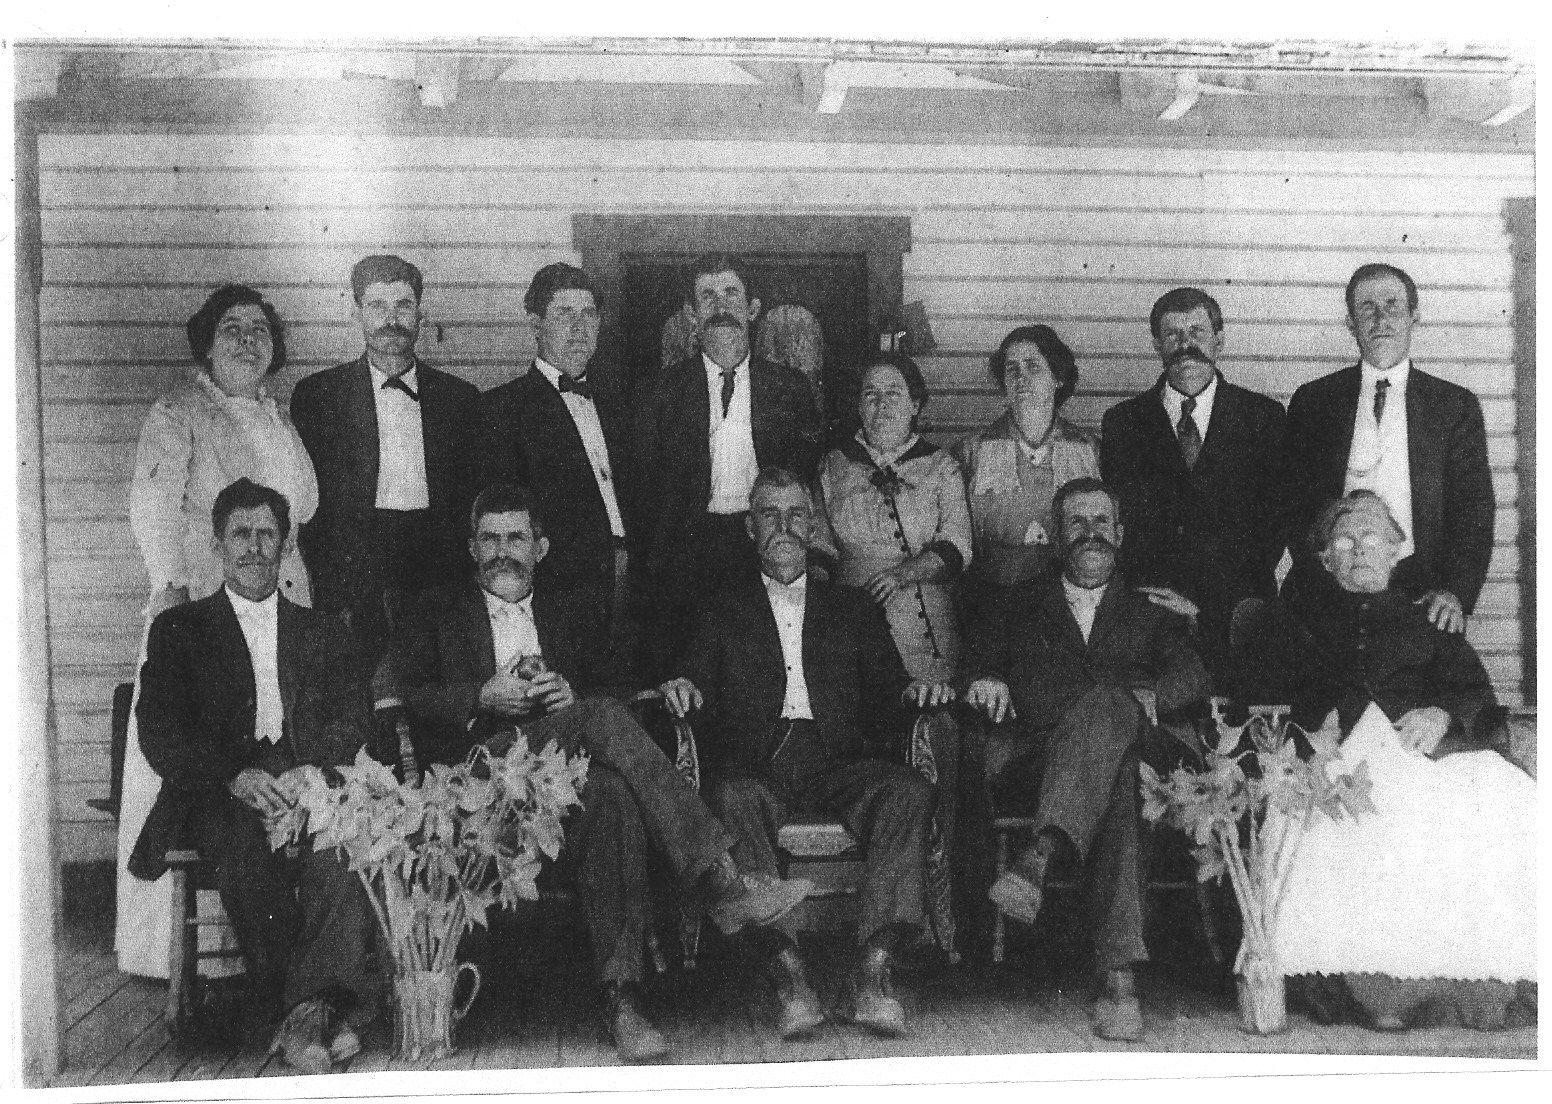 """Prine Family: May have been taken at the funeral of Henry Alfred Prine 1907. stdg lt 2 rt: Martha """"Mattie"""", Henry Bloxon """"Block"""". Leon, Dallas, Anne, Margaret, Lawson, & John Charleston """"Chart"""" std lt to rit: Shelton, Morgan, Robert, Thomas, Catherine R Prine not in pic: Ellen (married); Helen (died as a child)"""